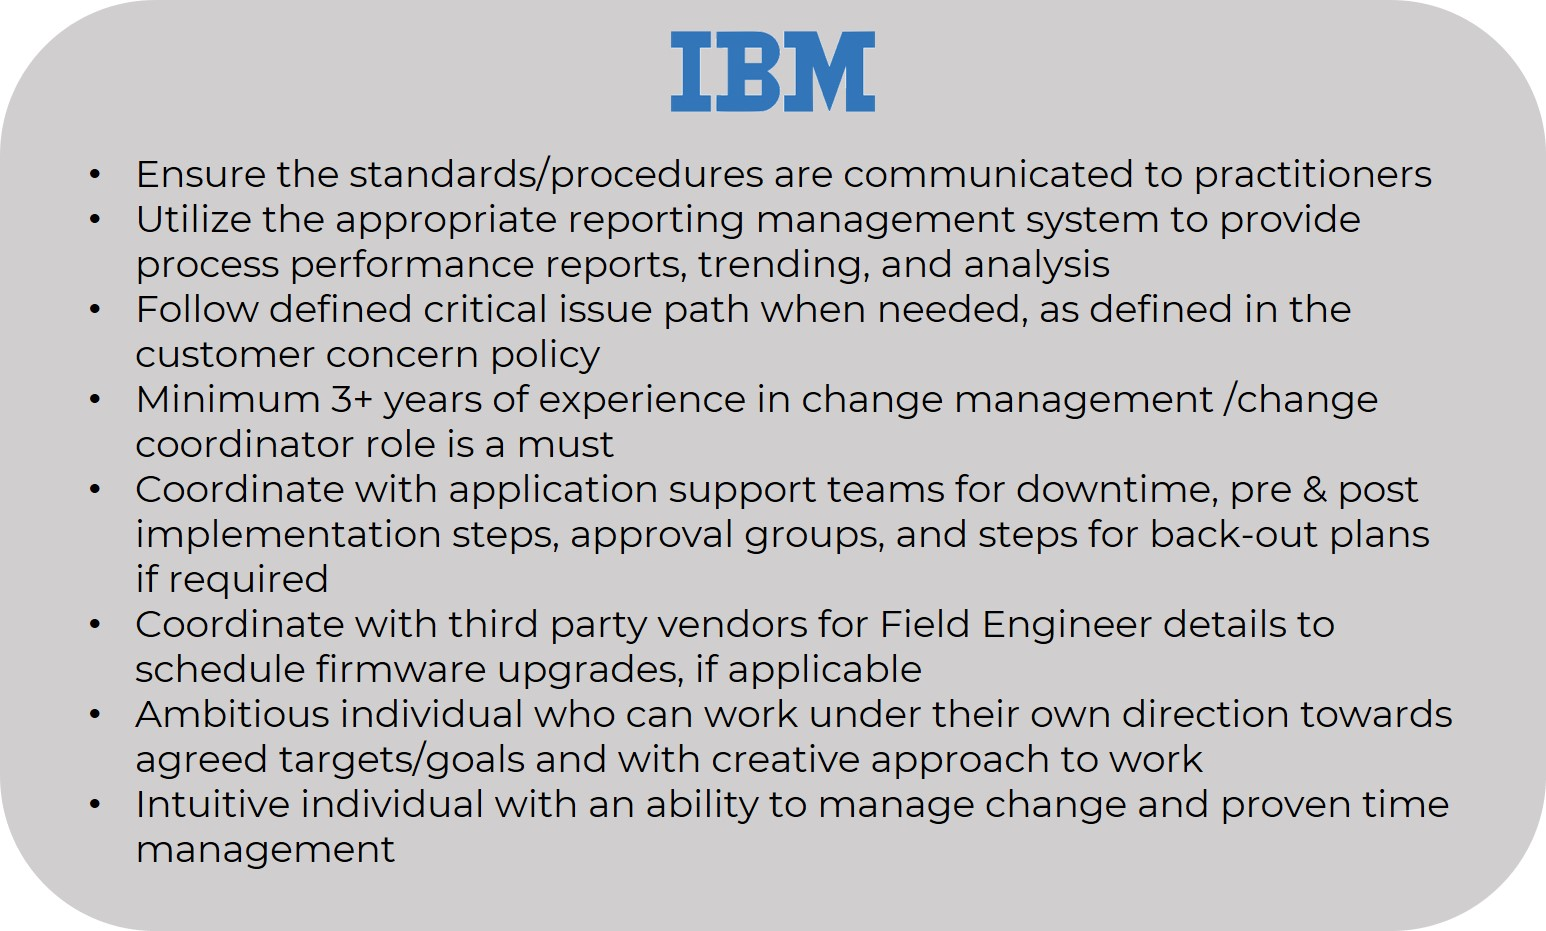 IBM Change Manager Resume - Change Manager Resume - Invensis Learning